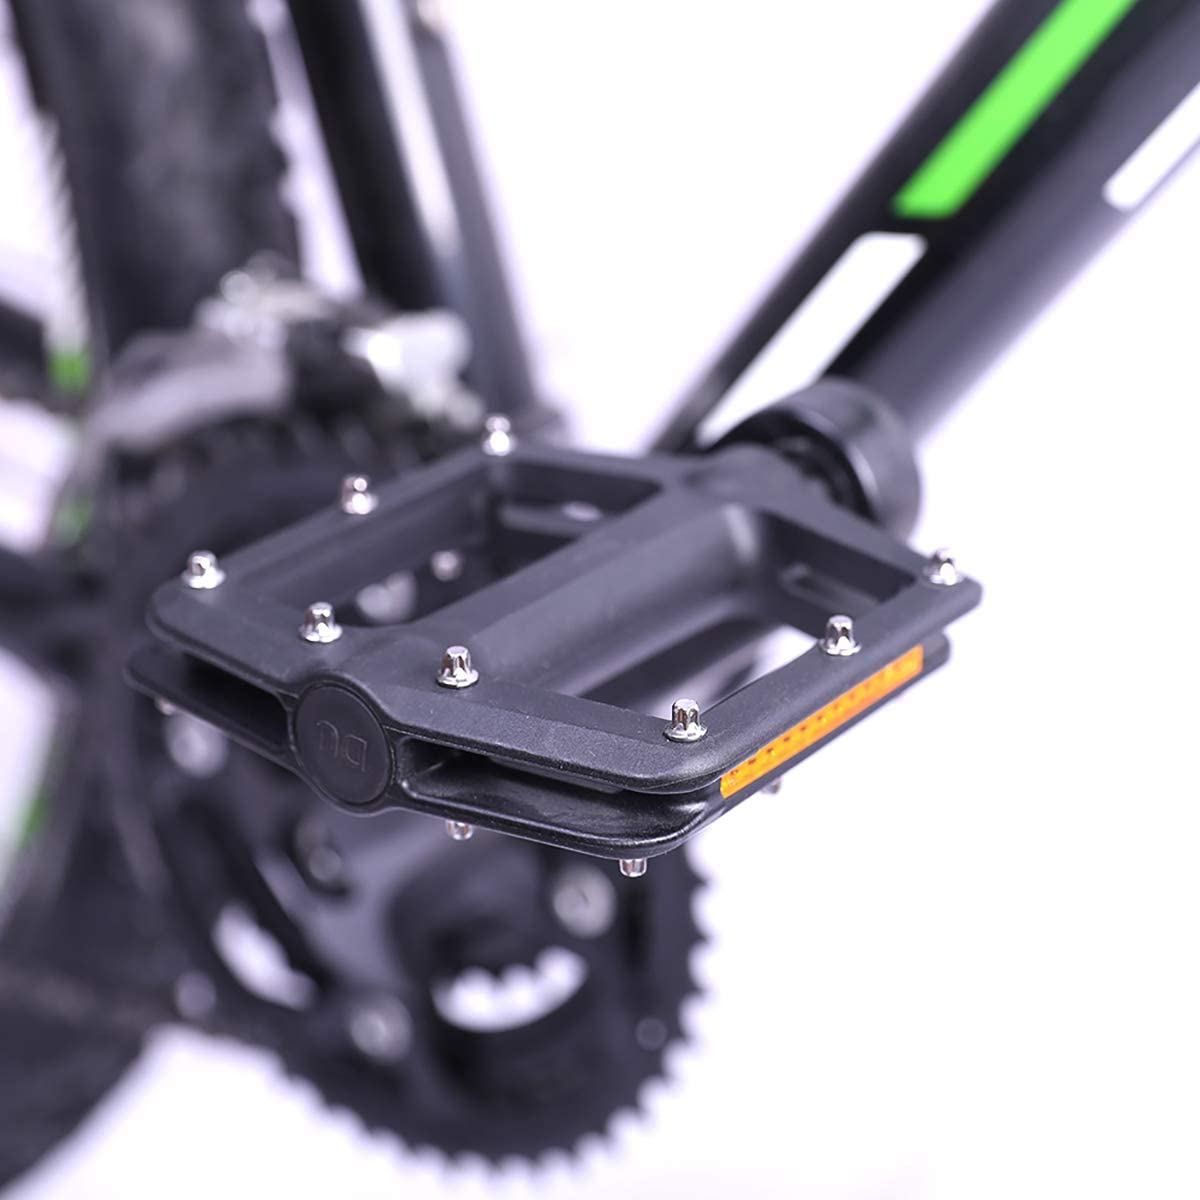 1 Pair Mountian Bike Pedals Polyamide Bike Pedals For BMX Road MTB Bicycle